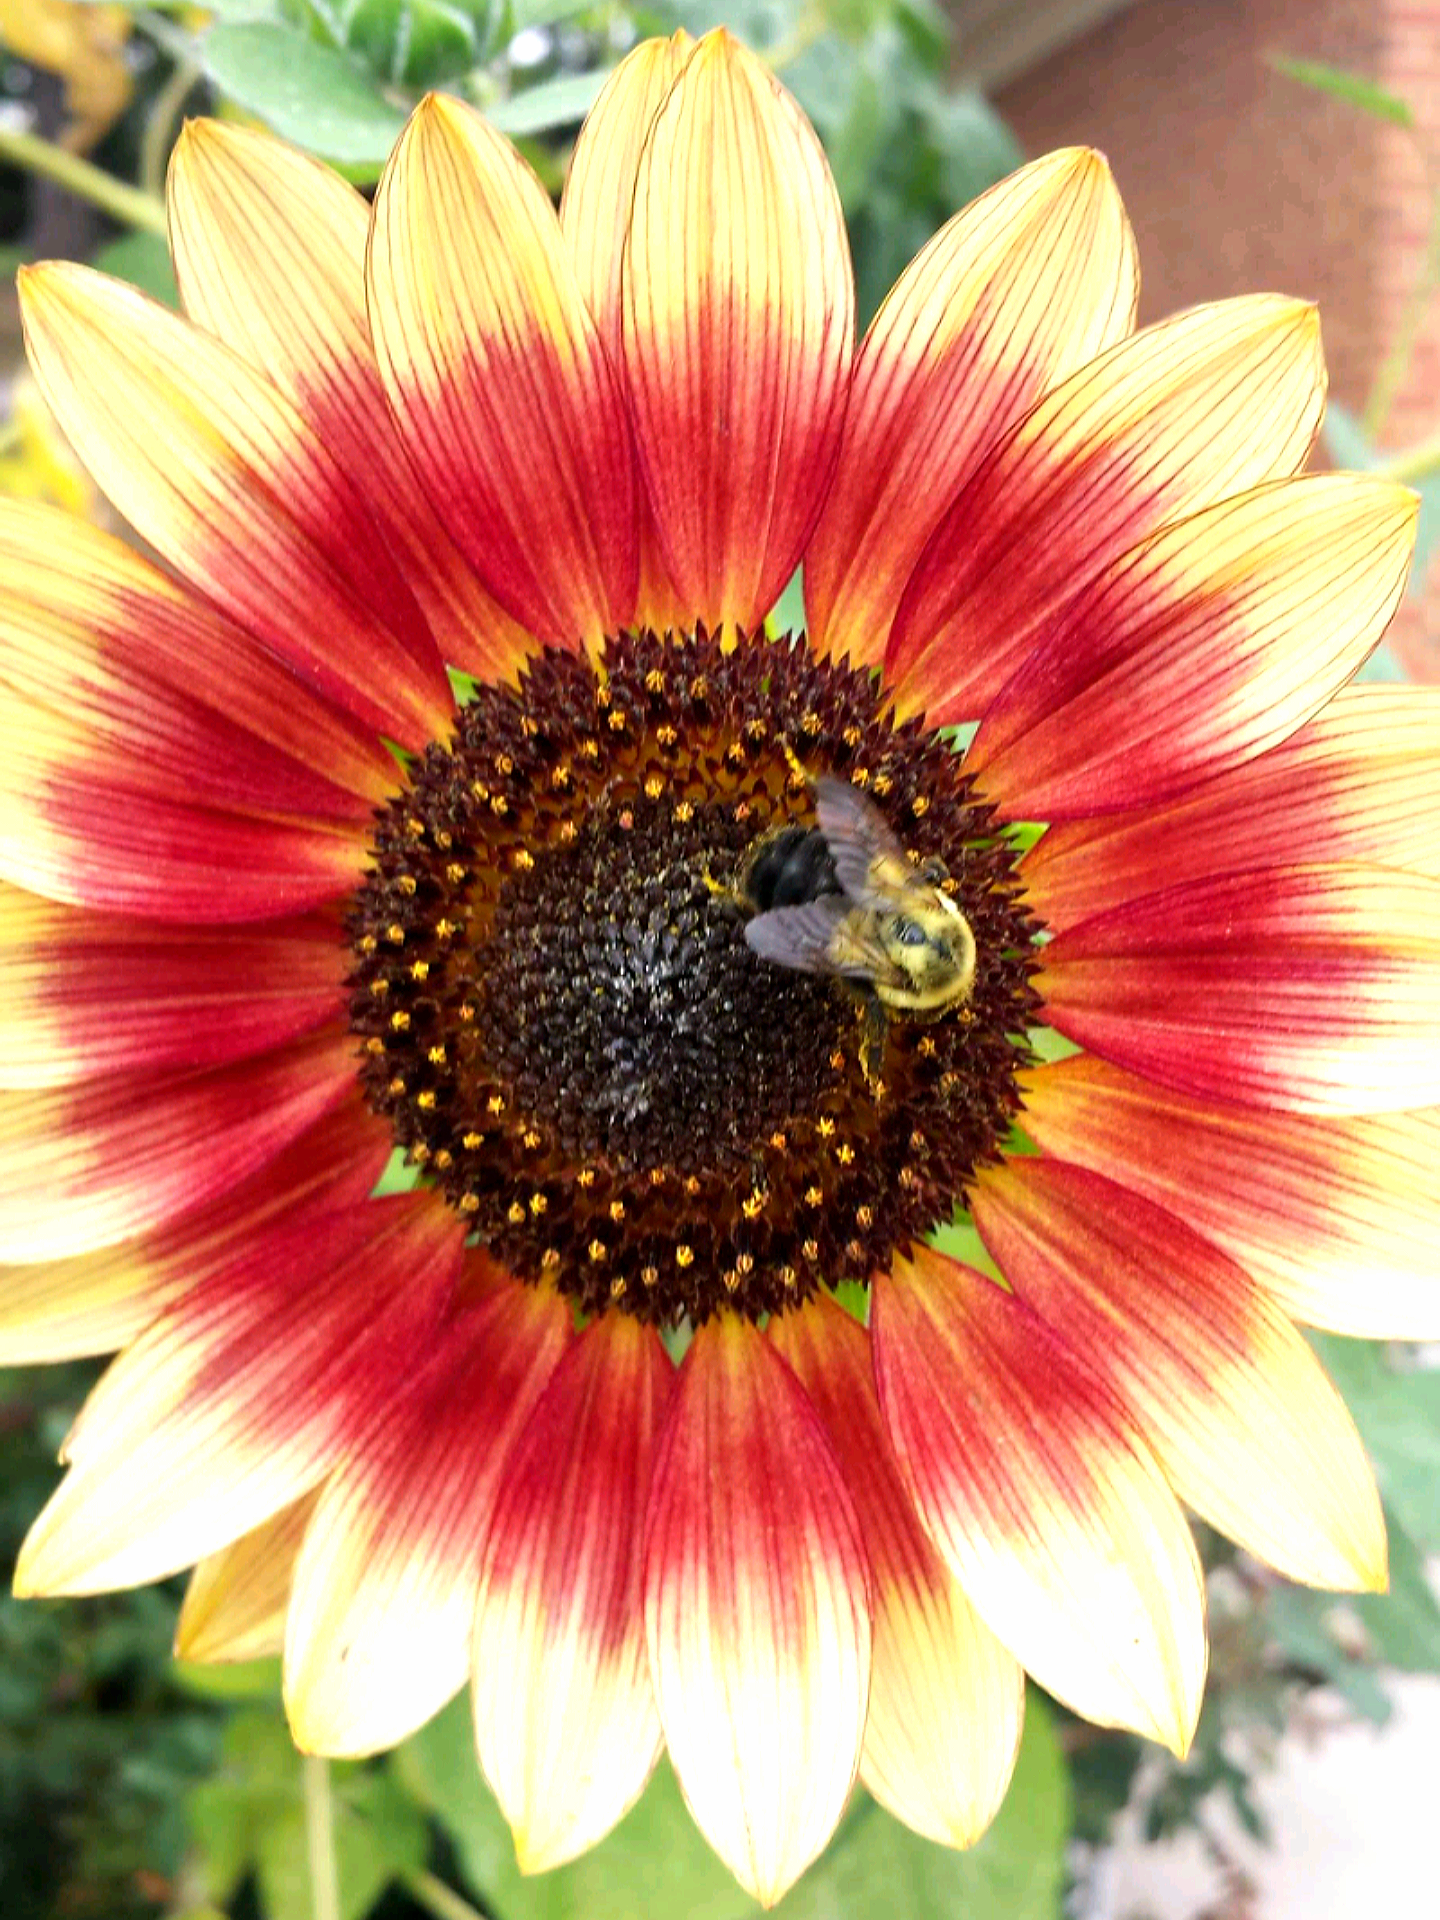 Brittany Elswick's photo of a bee on a sunflower is one of several photographers' works displayed in the Du Quoin Public Library Gallery through June. In July, the library will chose new pieces from local photographers' submissions to hang through September.